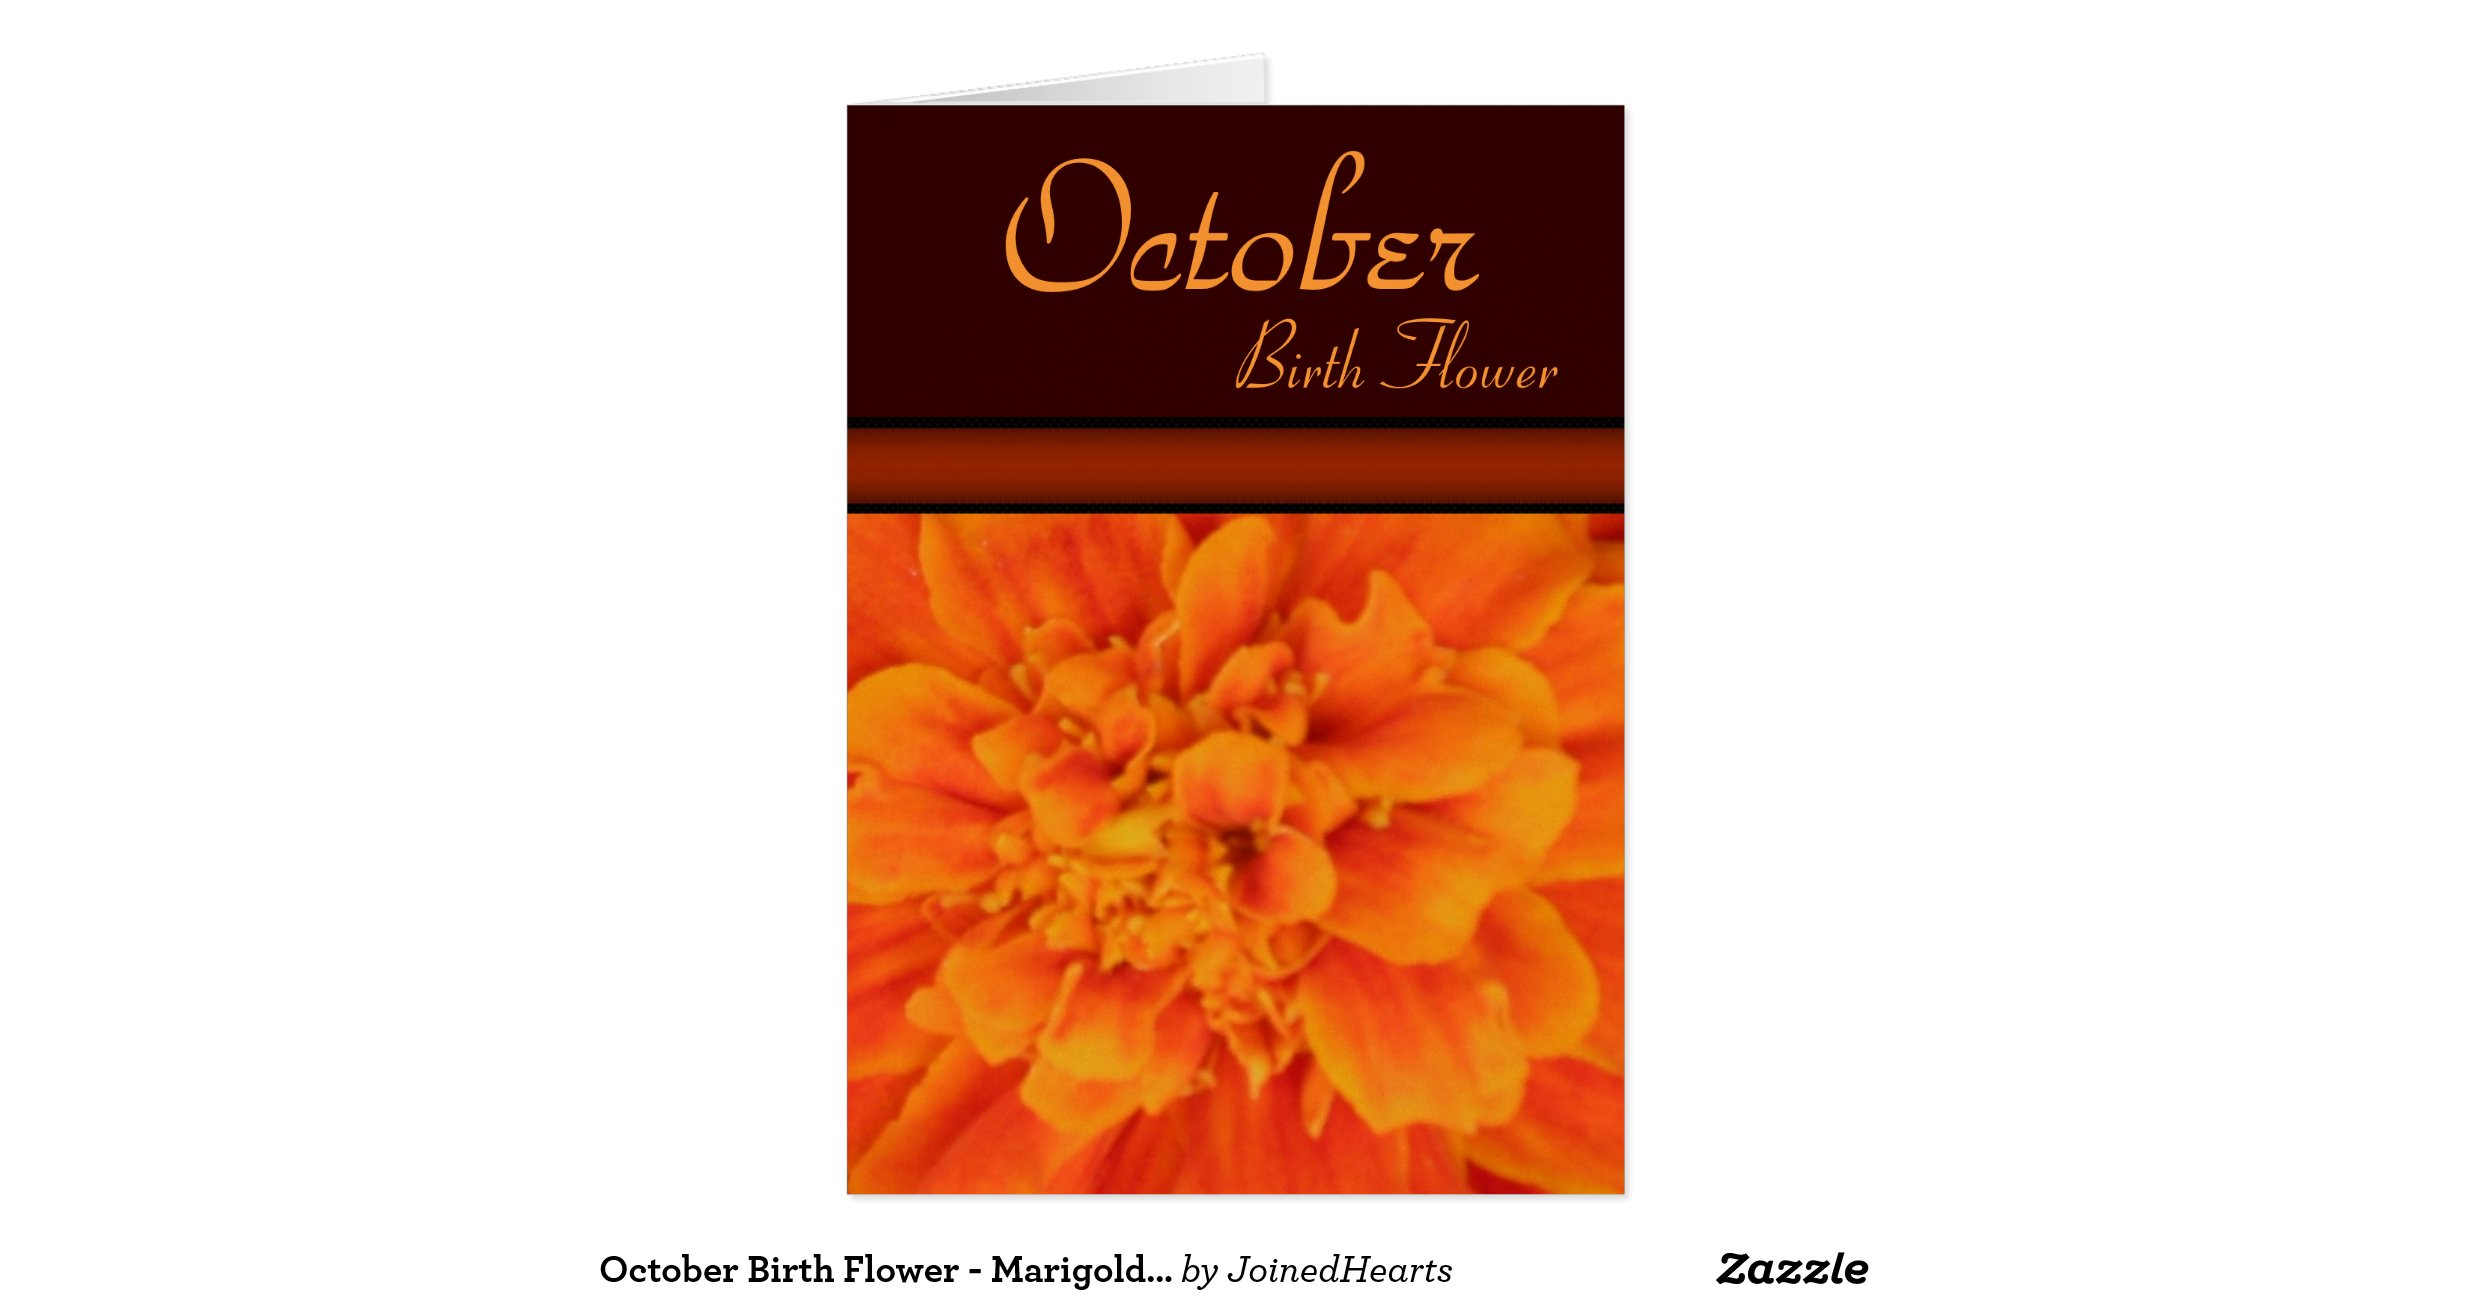 october birth flower marigold note card radb54d299b894a1197f6adedc4a3966e xvu